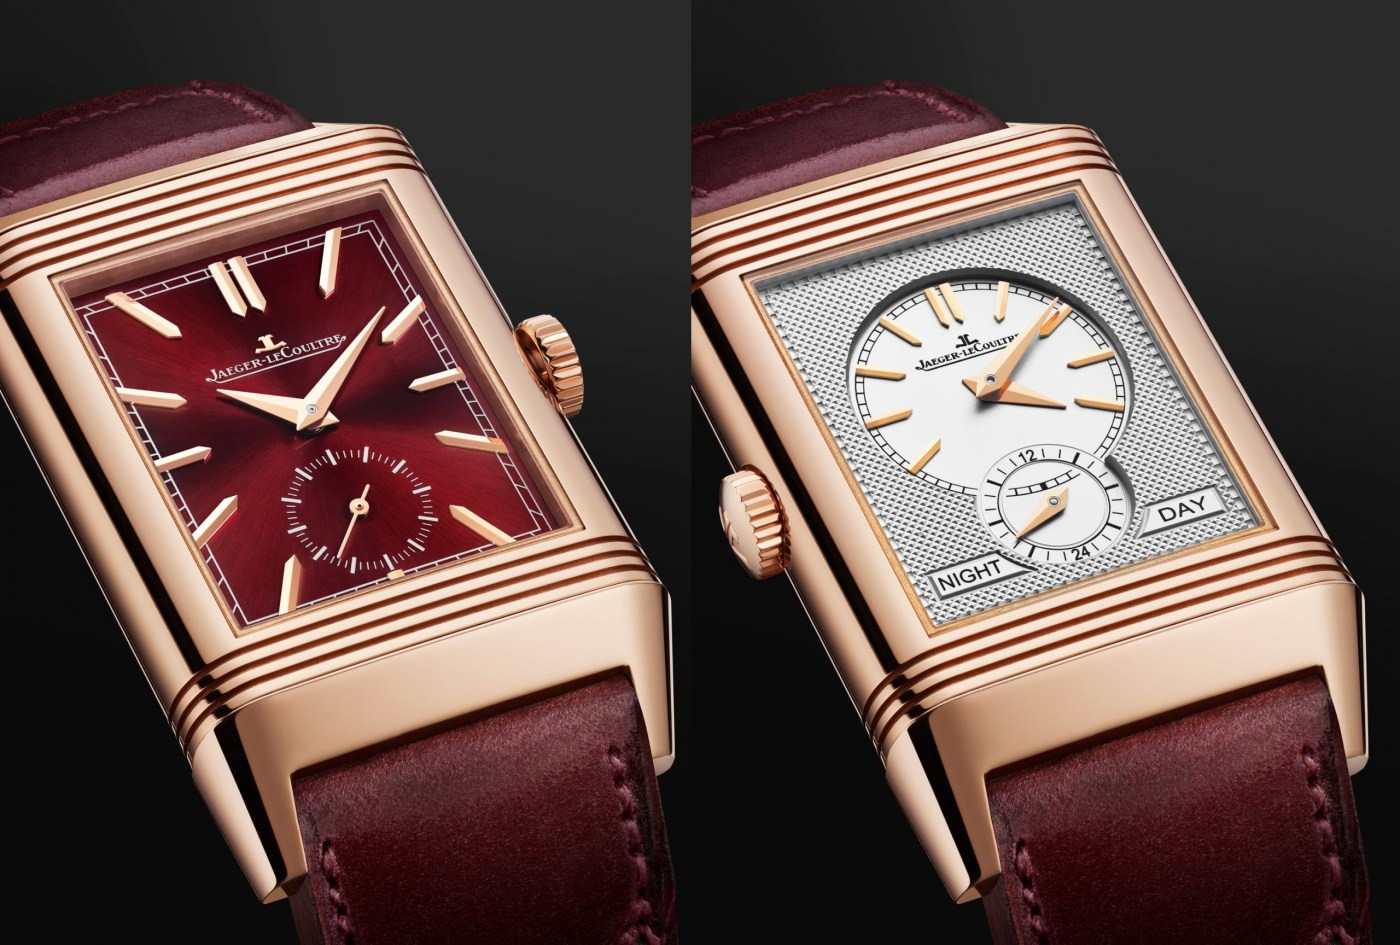 Jaeger-LeCoultre Reverso Tribute Duoface Fagliano front and back